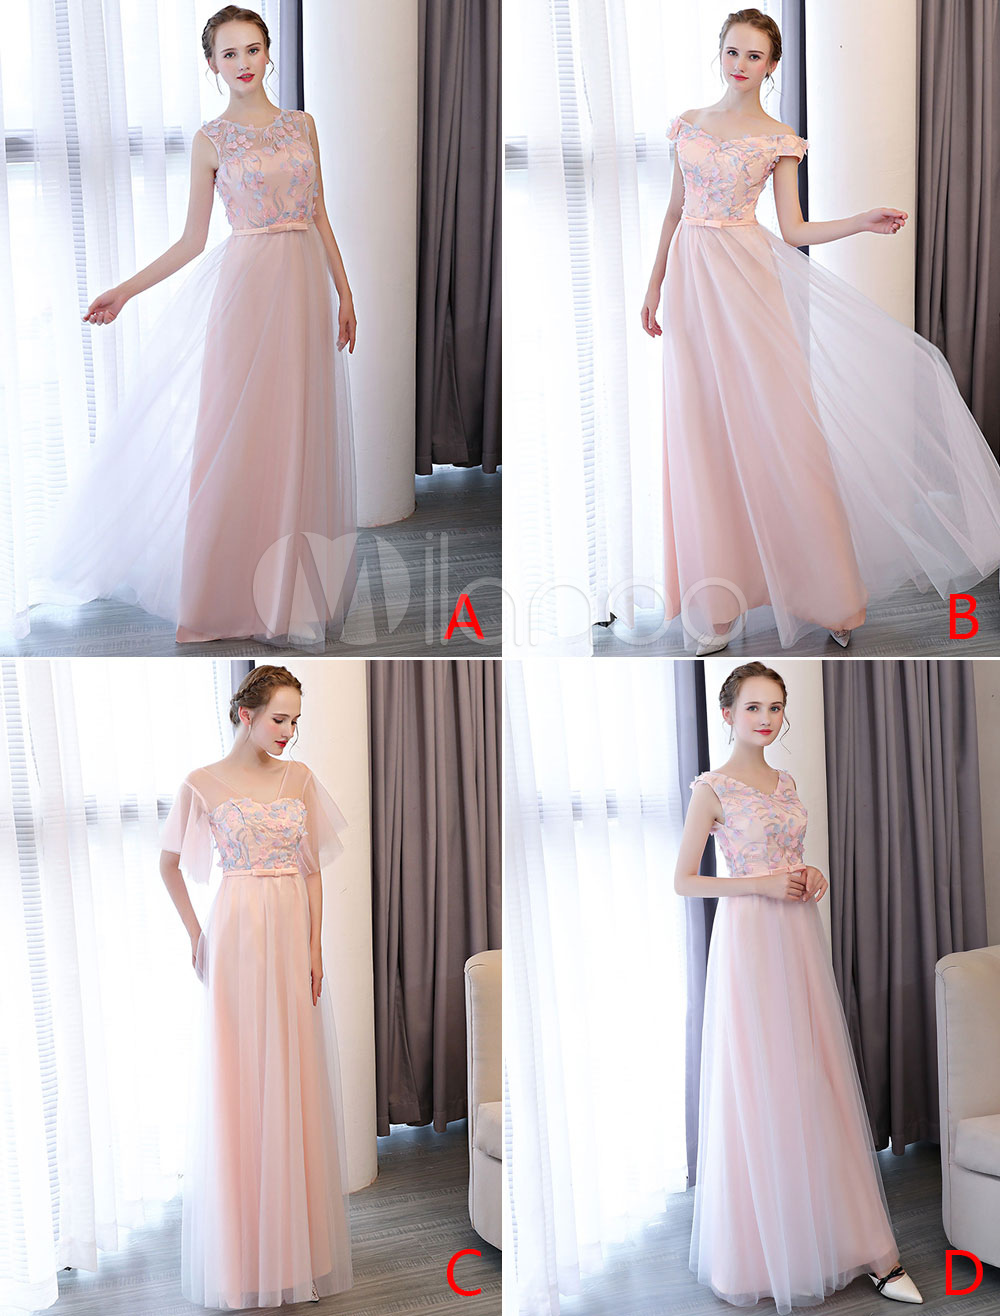 Prom Dresses Soft Pink Long Tulle Flowers Applique Backless Floor Length Formal Party Dress